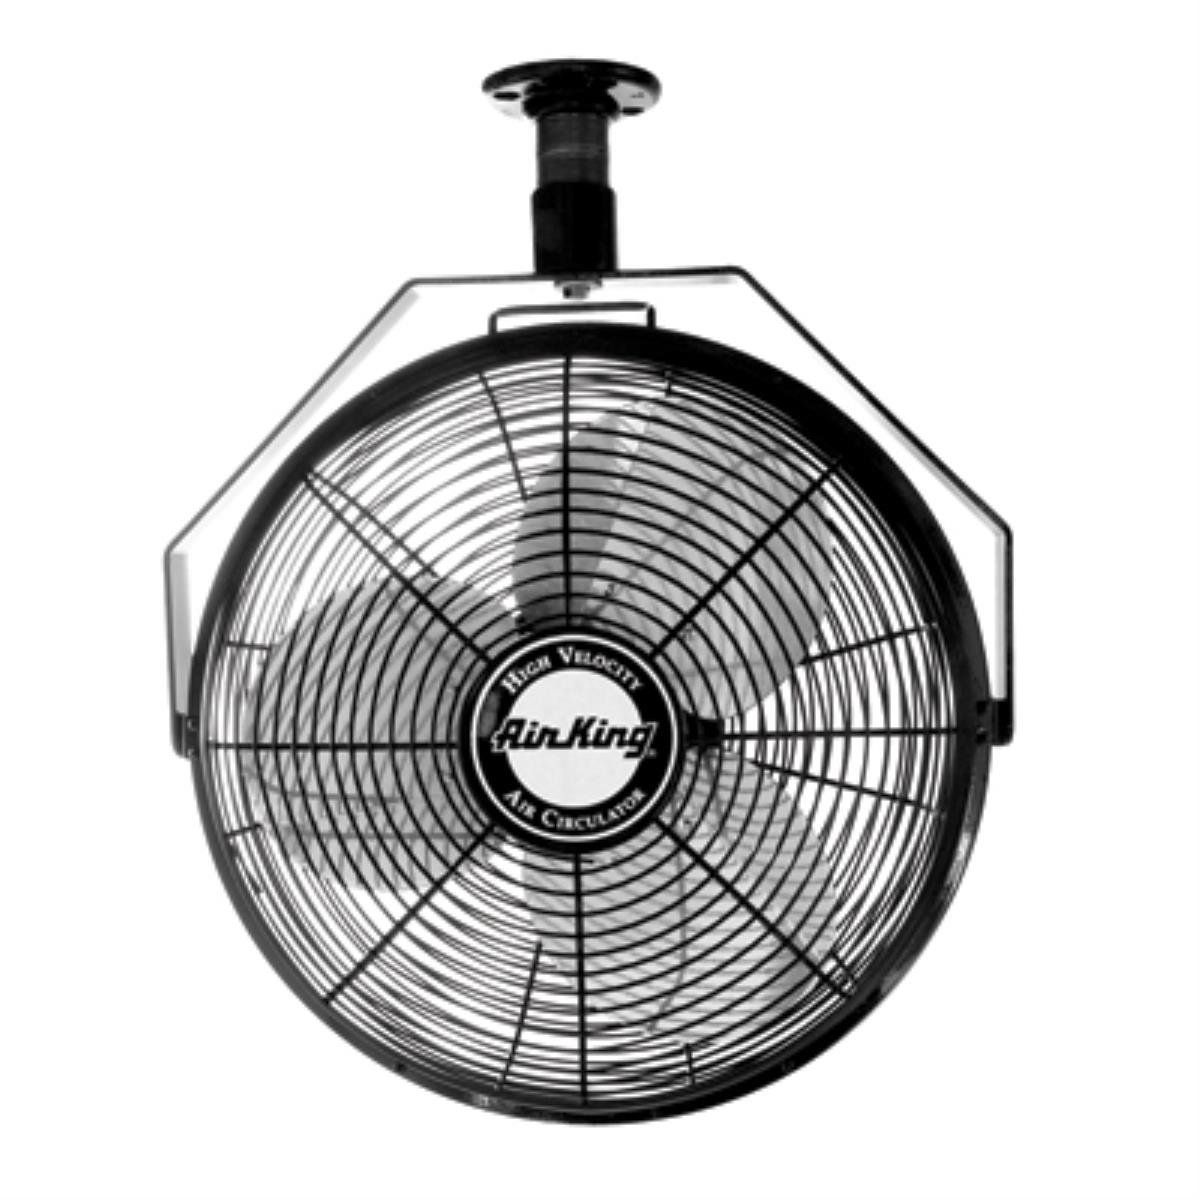 amazon air king 9718 18 inch industrial grade ceiling mount Commercial Electric Heaters amazon air king 9718 18 inch industrial grade ceiling mount fan wall mount oscillating fan